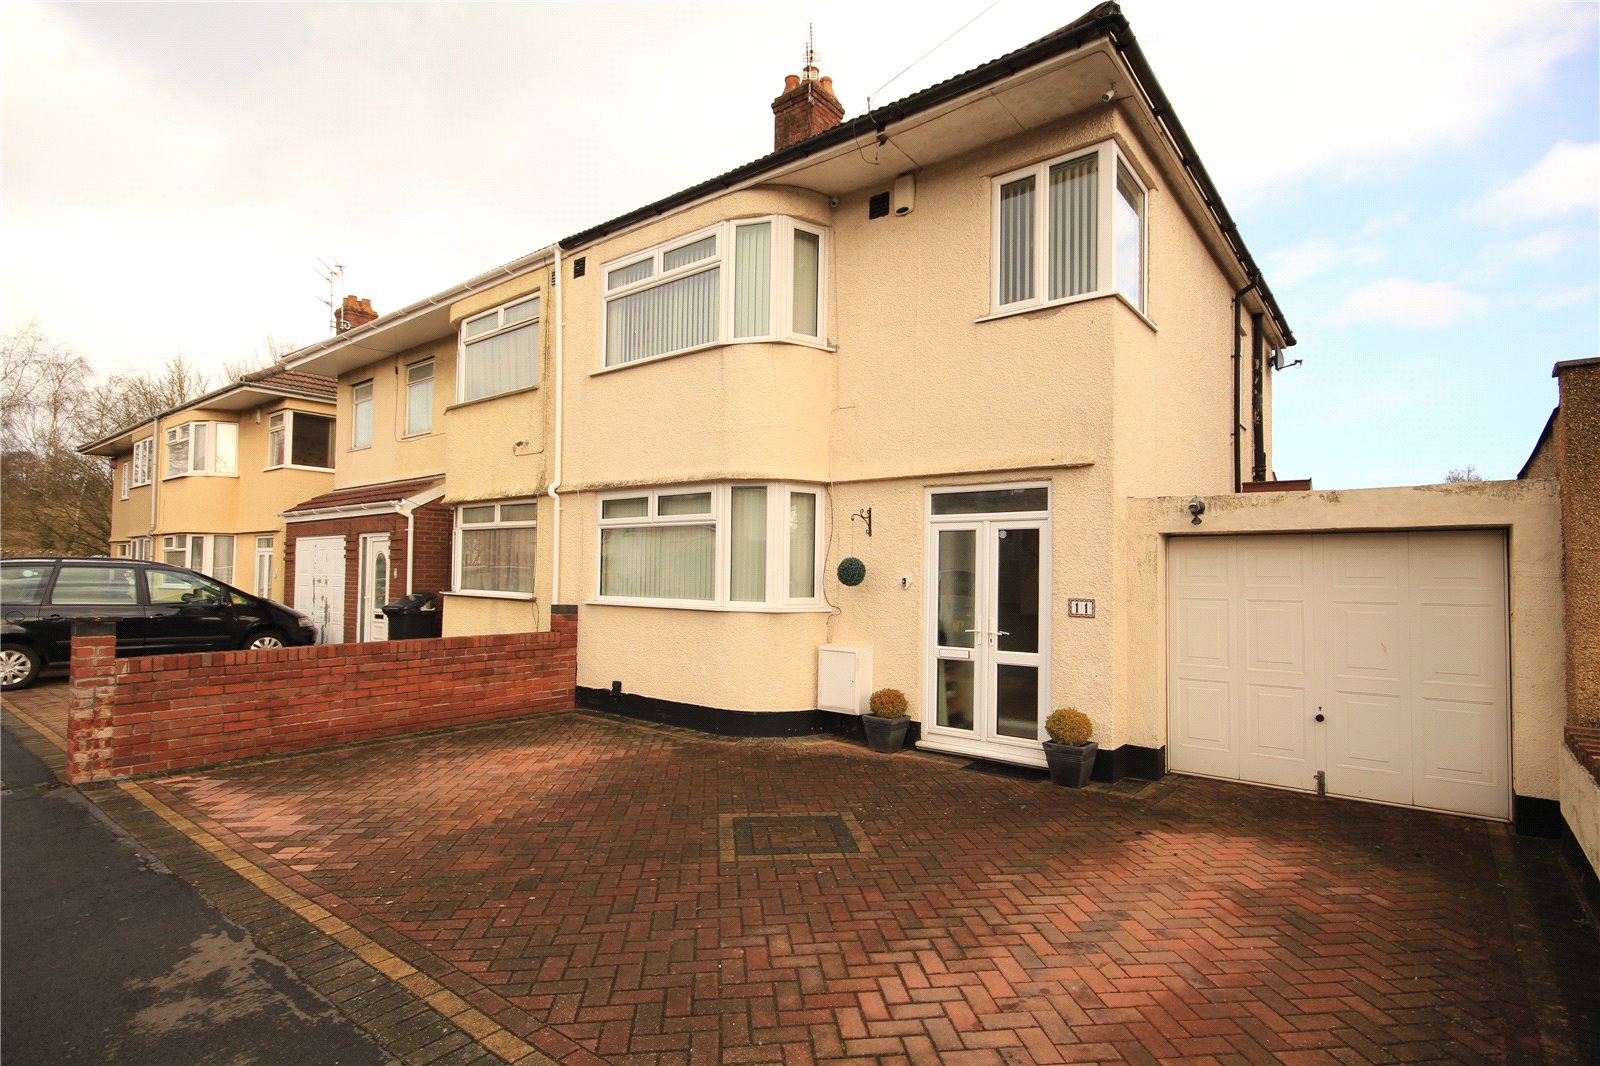 Cj Hole Downend 3 Bedroom House For Sale In Begbrook Lane